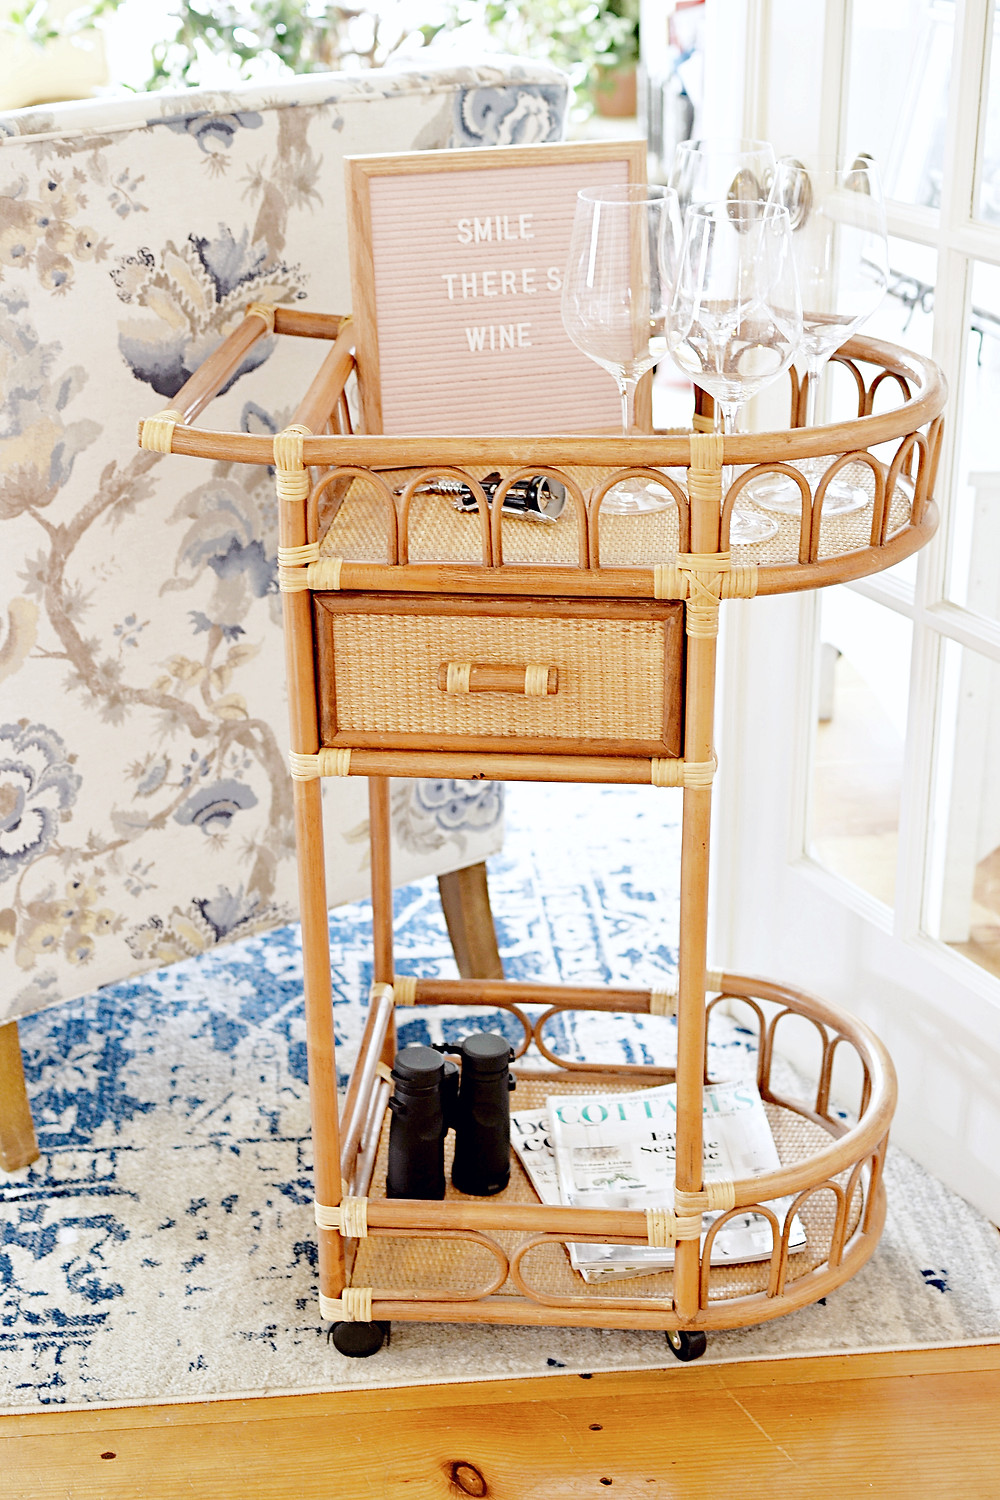 Vintage beverage cart with letter board, magazines, binoculars and wine glasses.